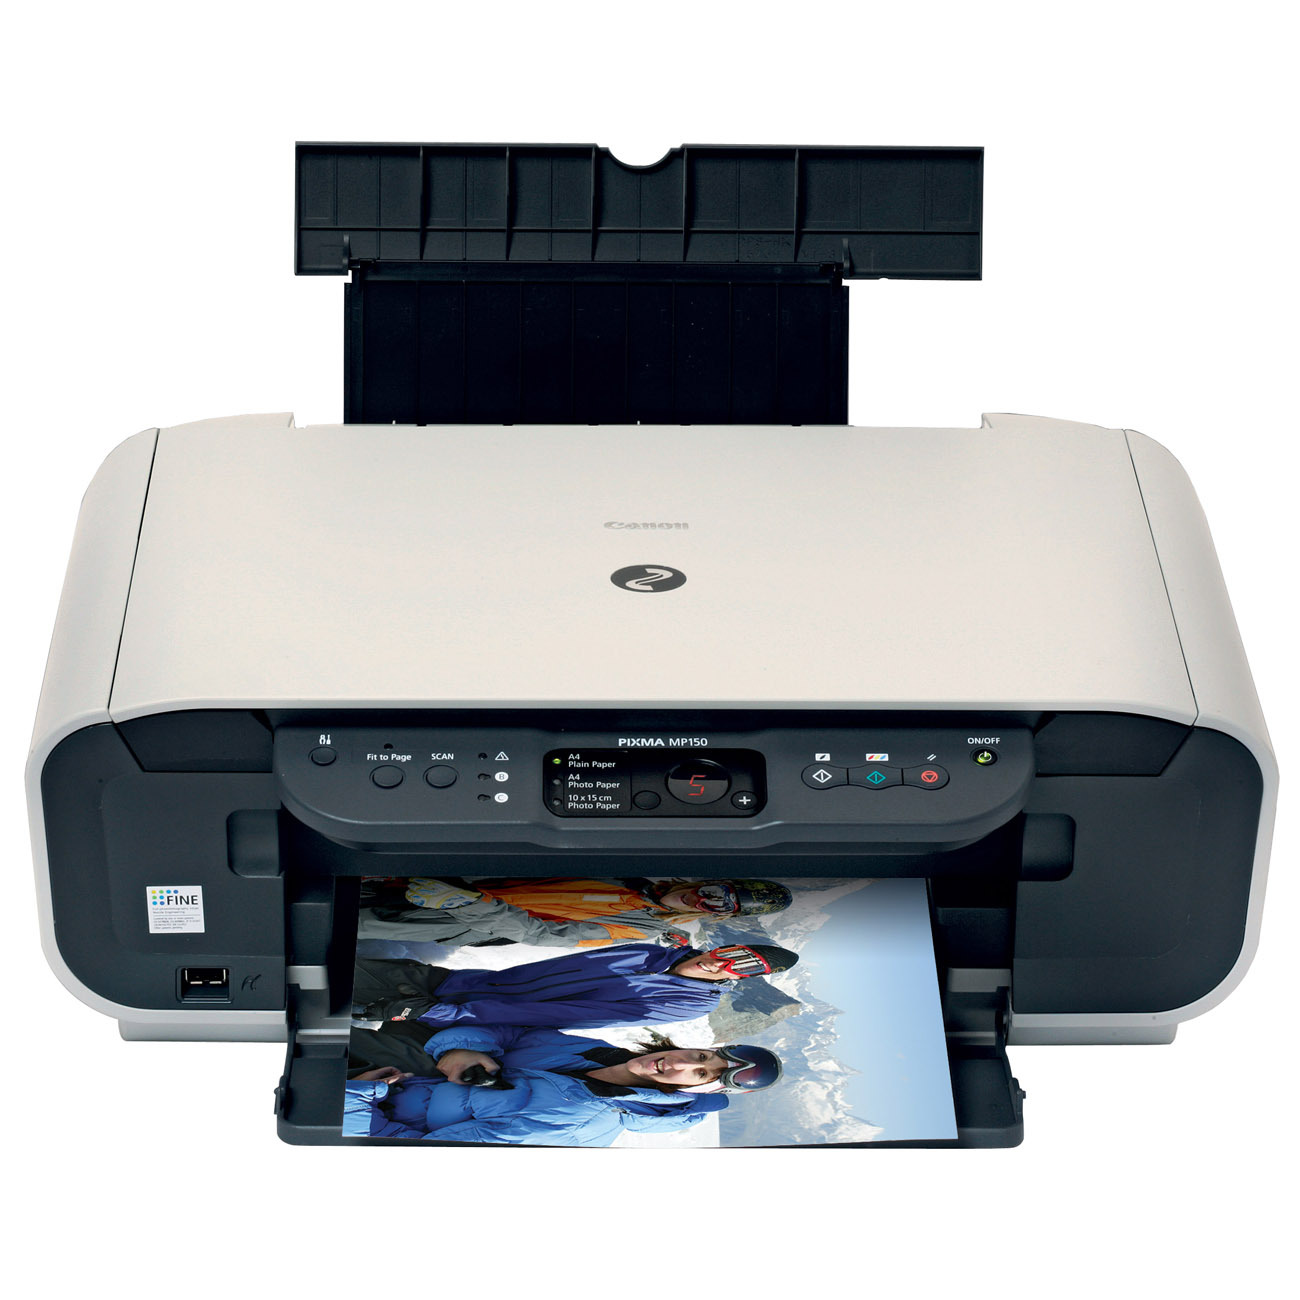 Canon mf5750 scanner drivers for windows 7